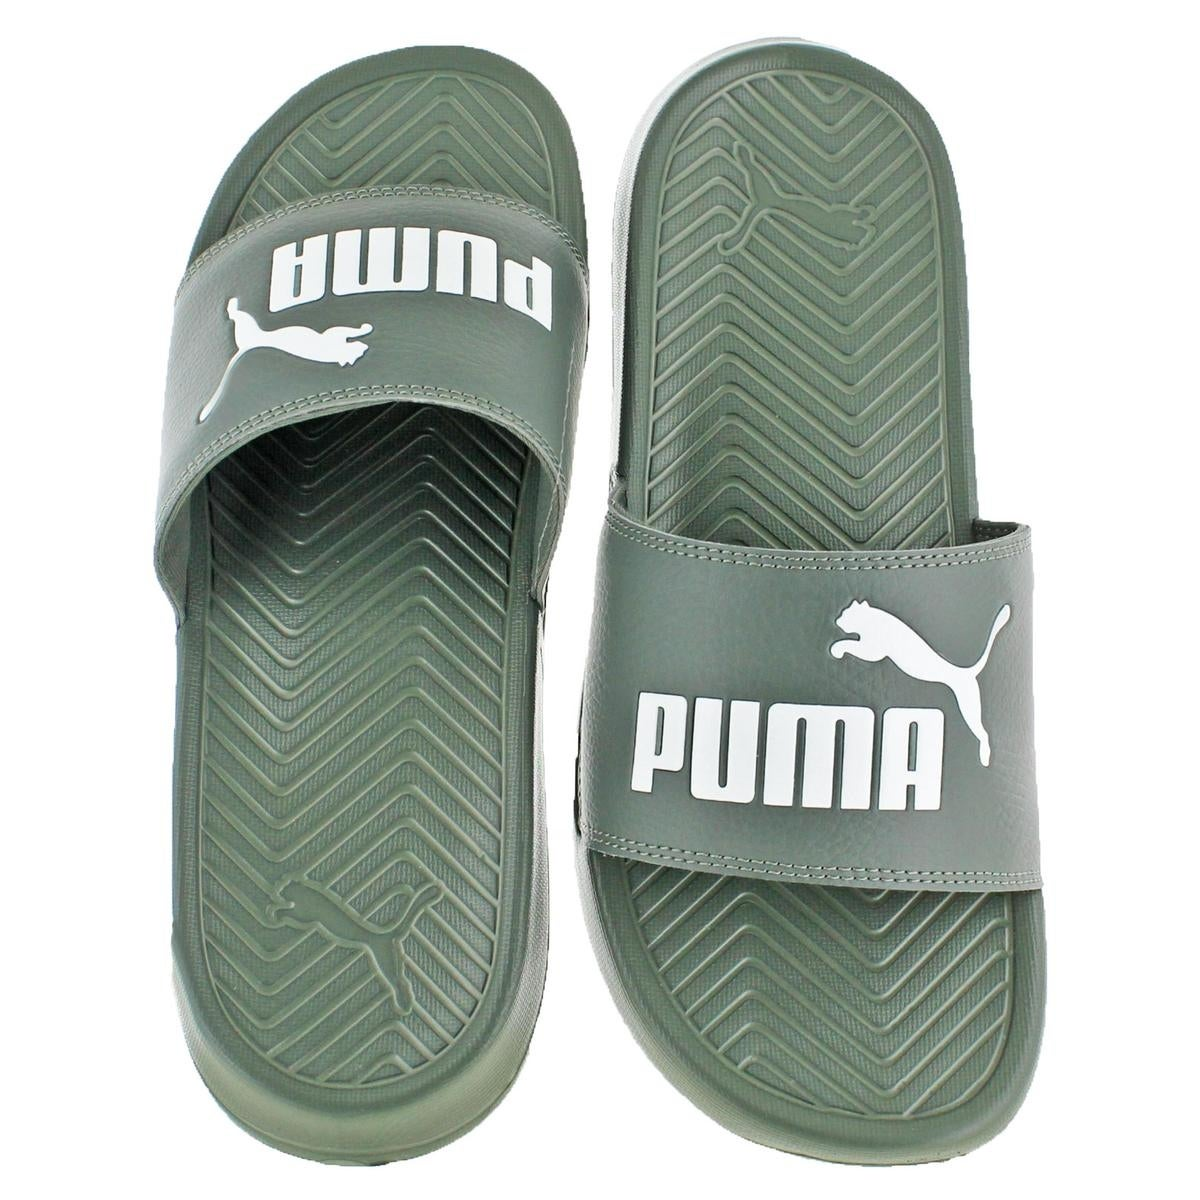 84d8a6cc067 Shop Puma Mens Popcat Slide Sandals Lightweight Pool Slide - Free ...